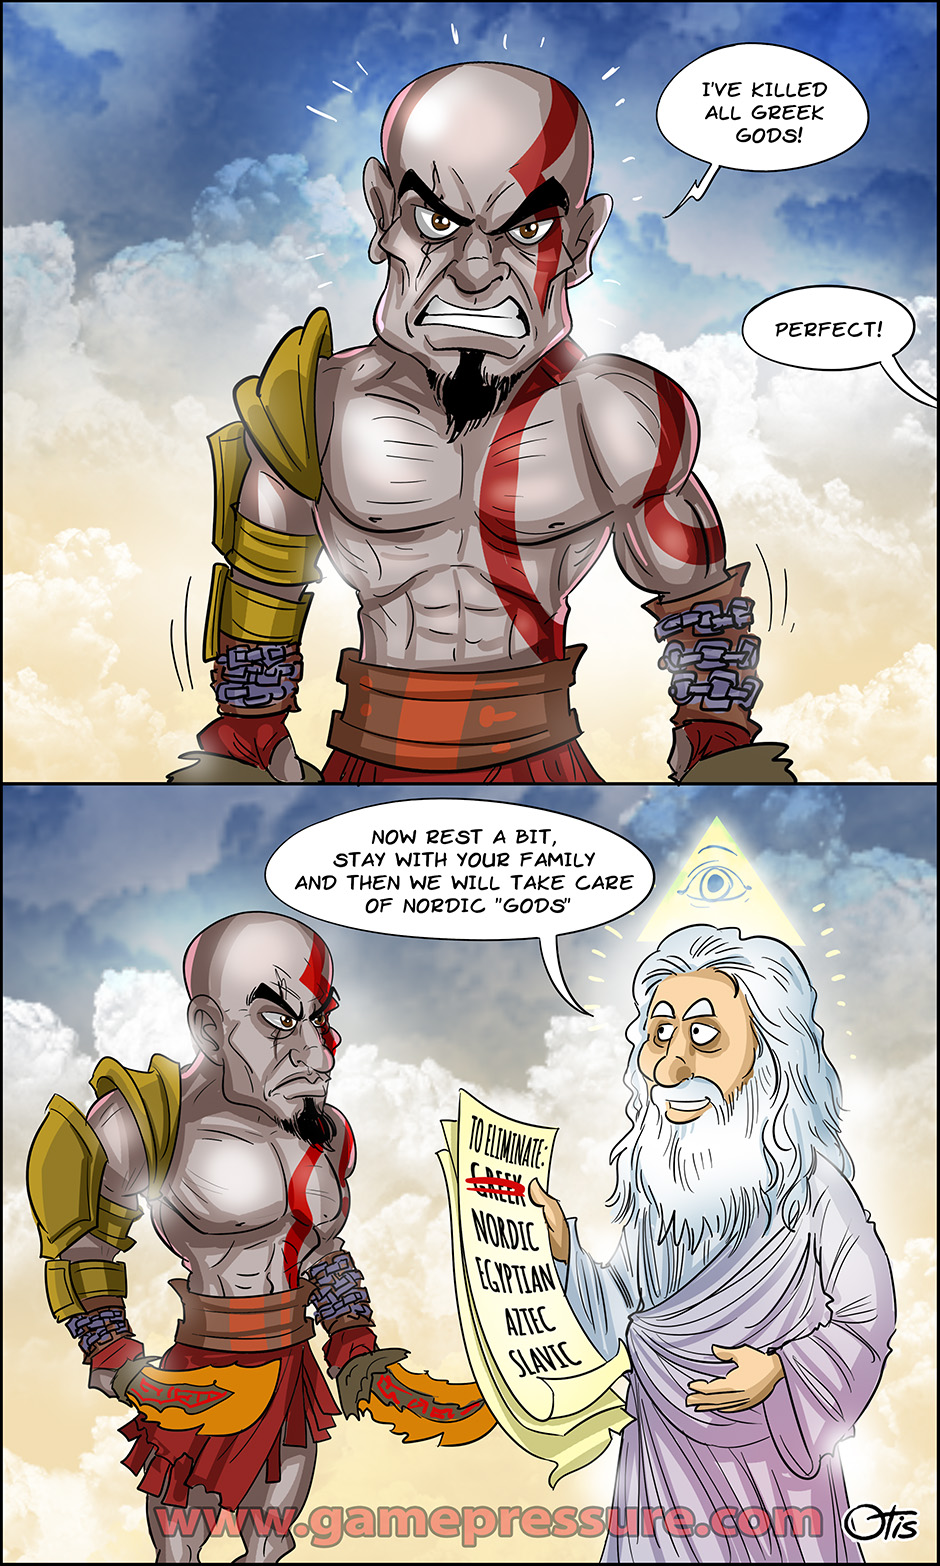 Kratos is ready for some god-slaying, comics Cartoon Games, Issue #234. He's done with the Greek gods, now what?!